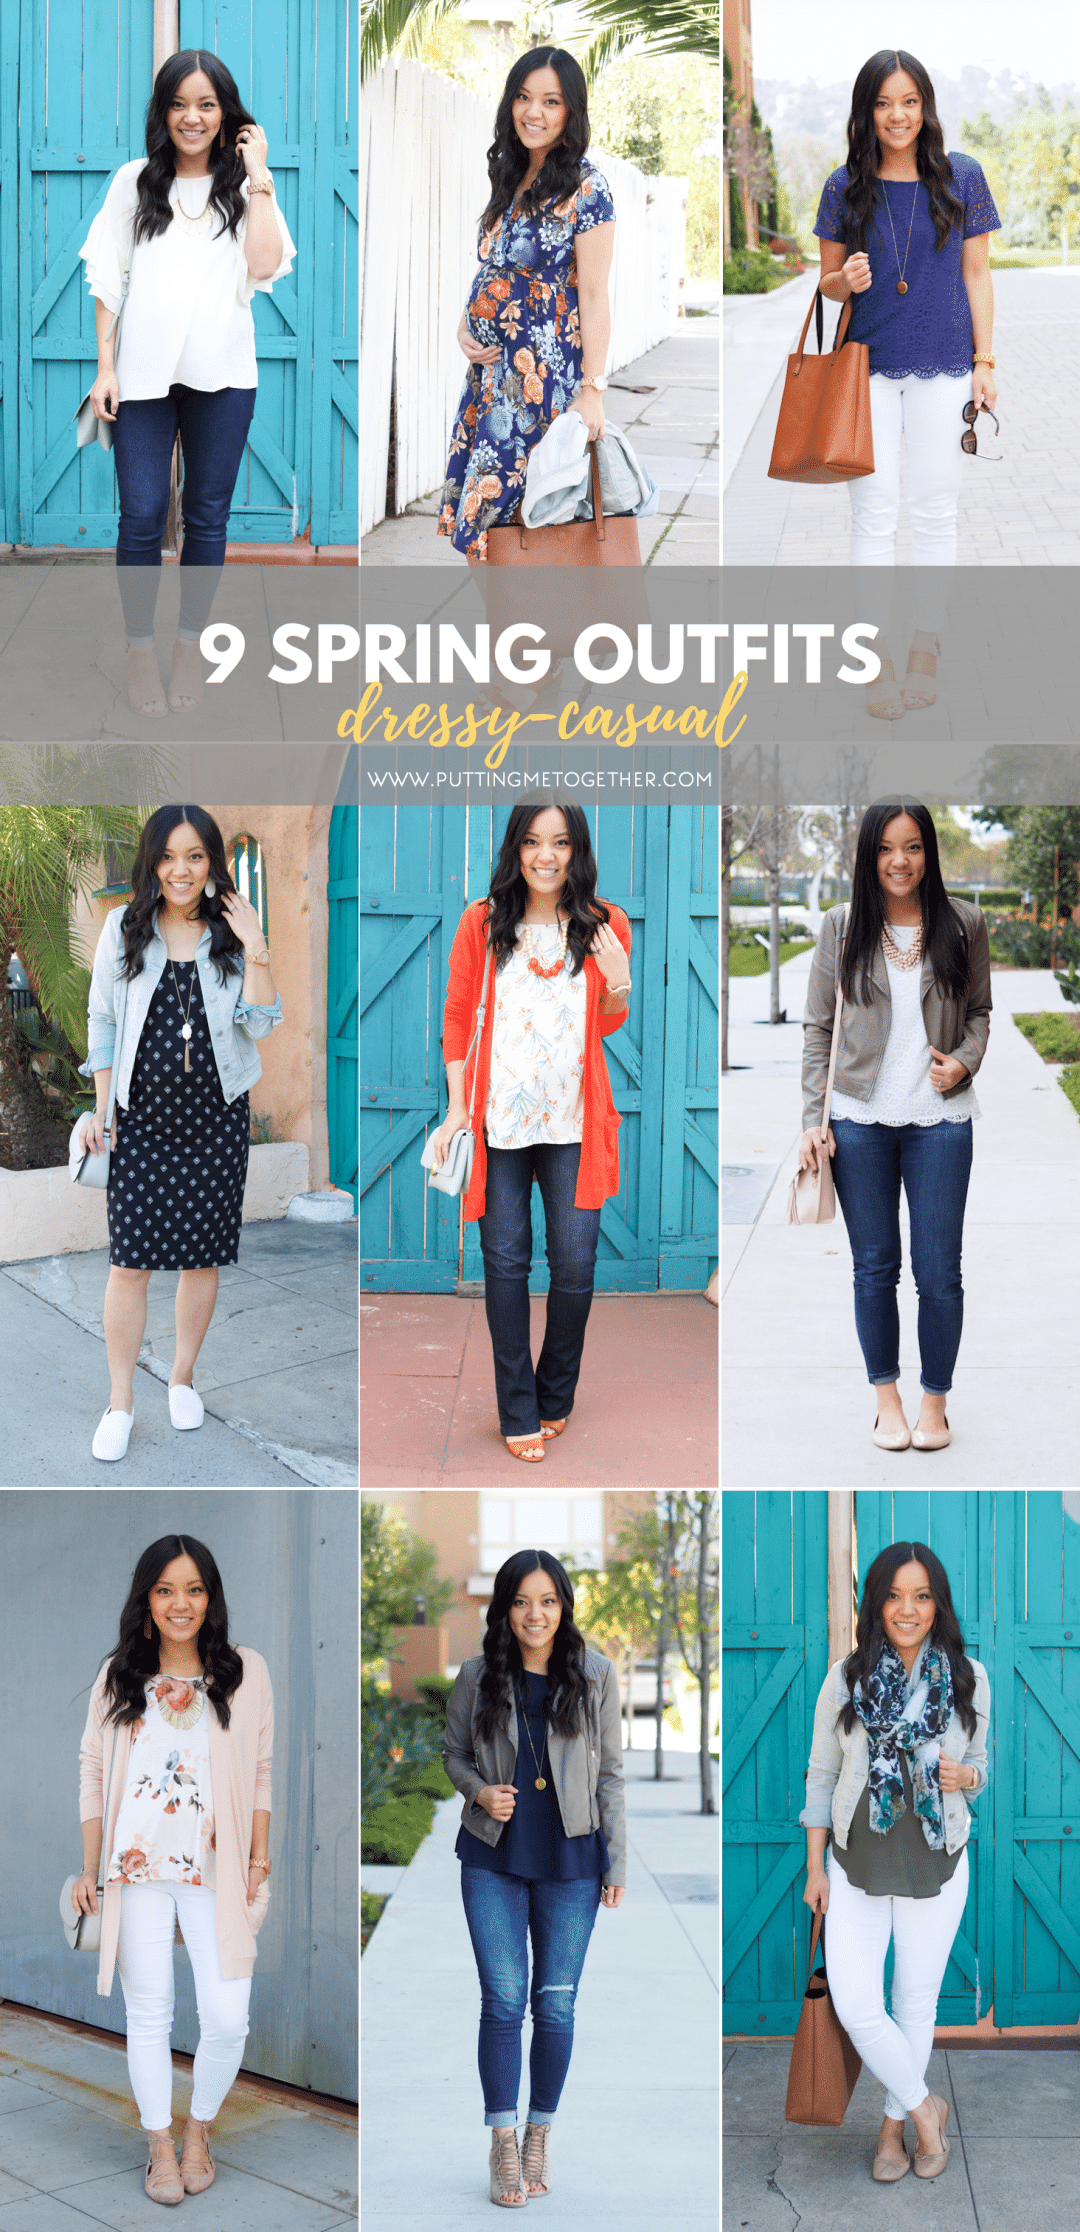 9 Dressy Casual Spring Outfits: Out